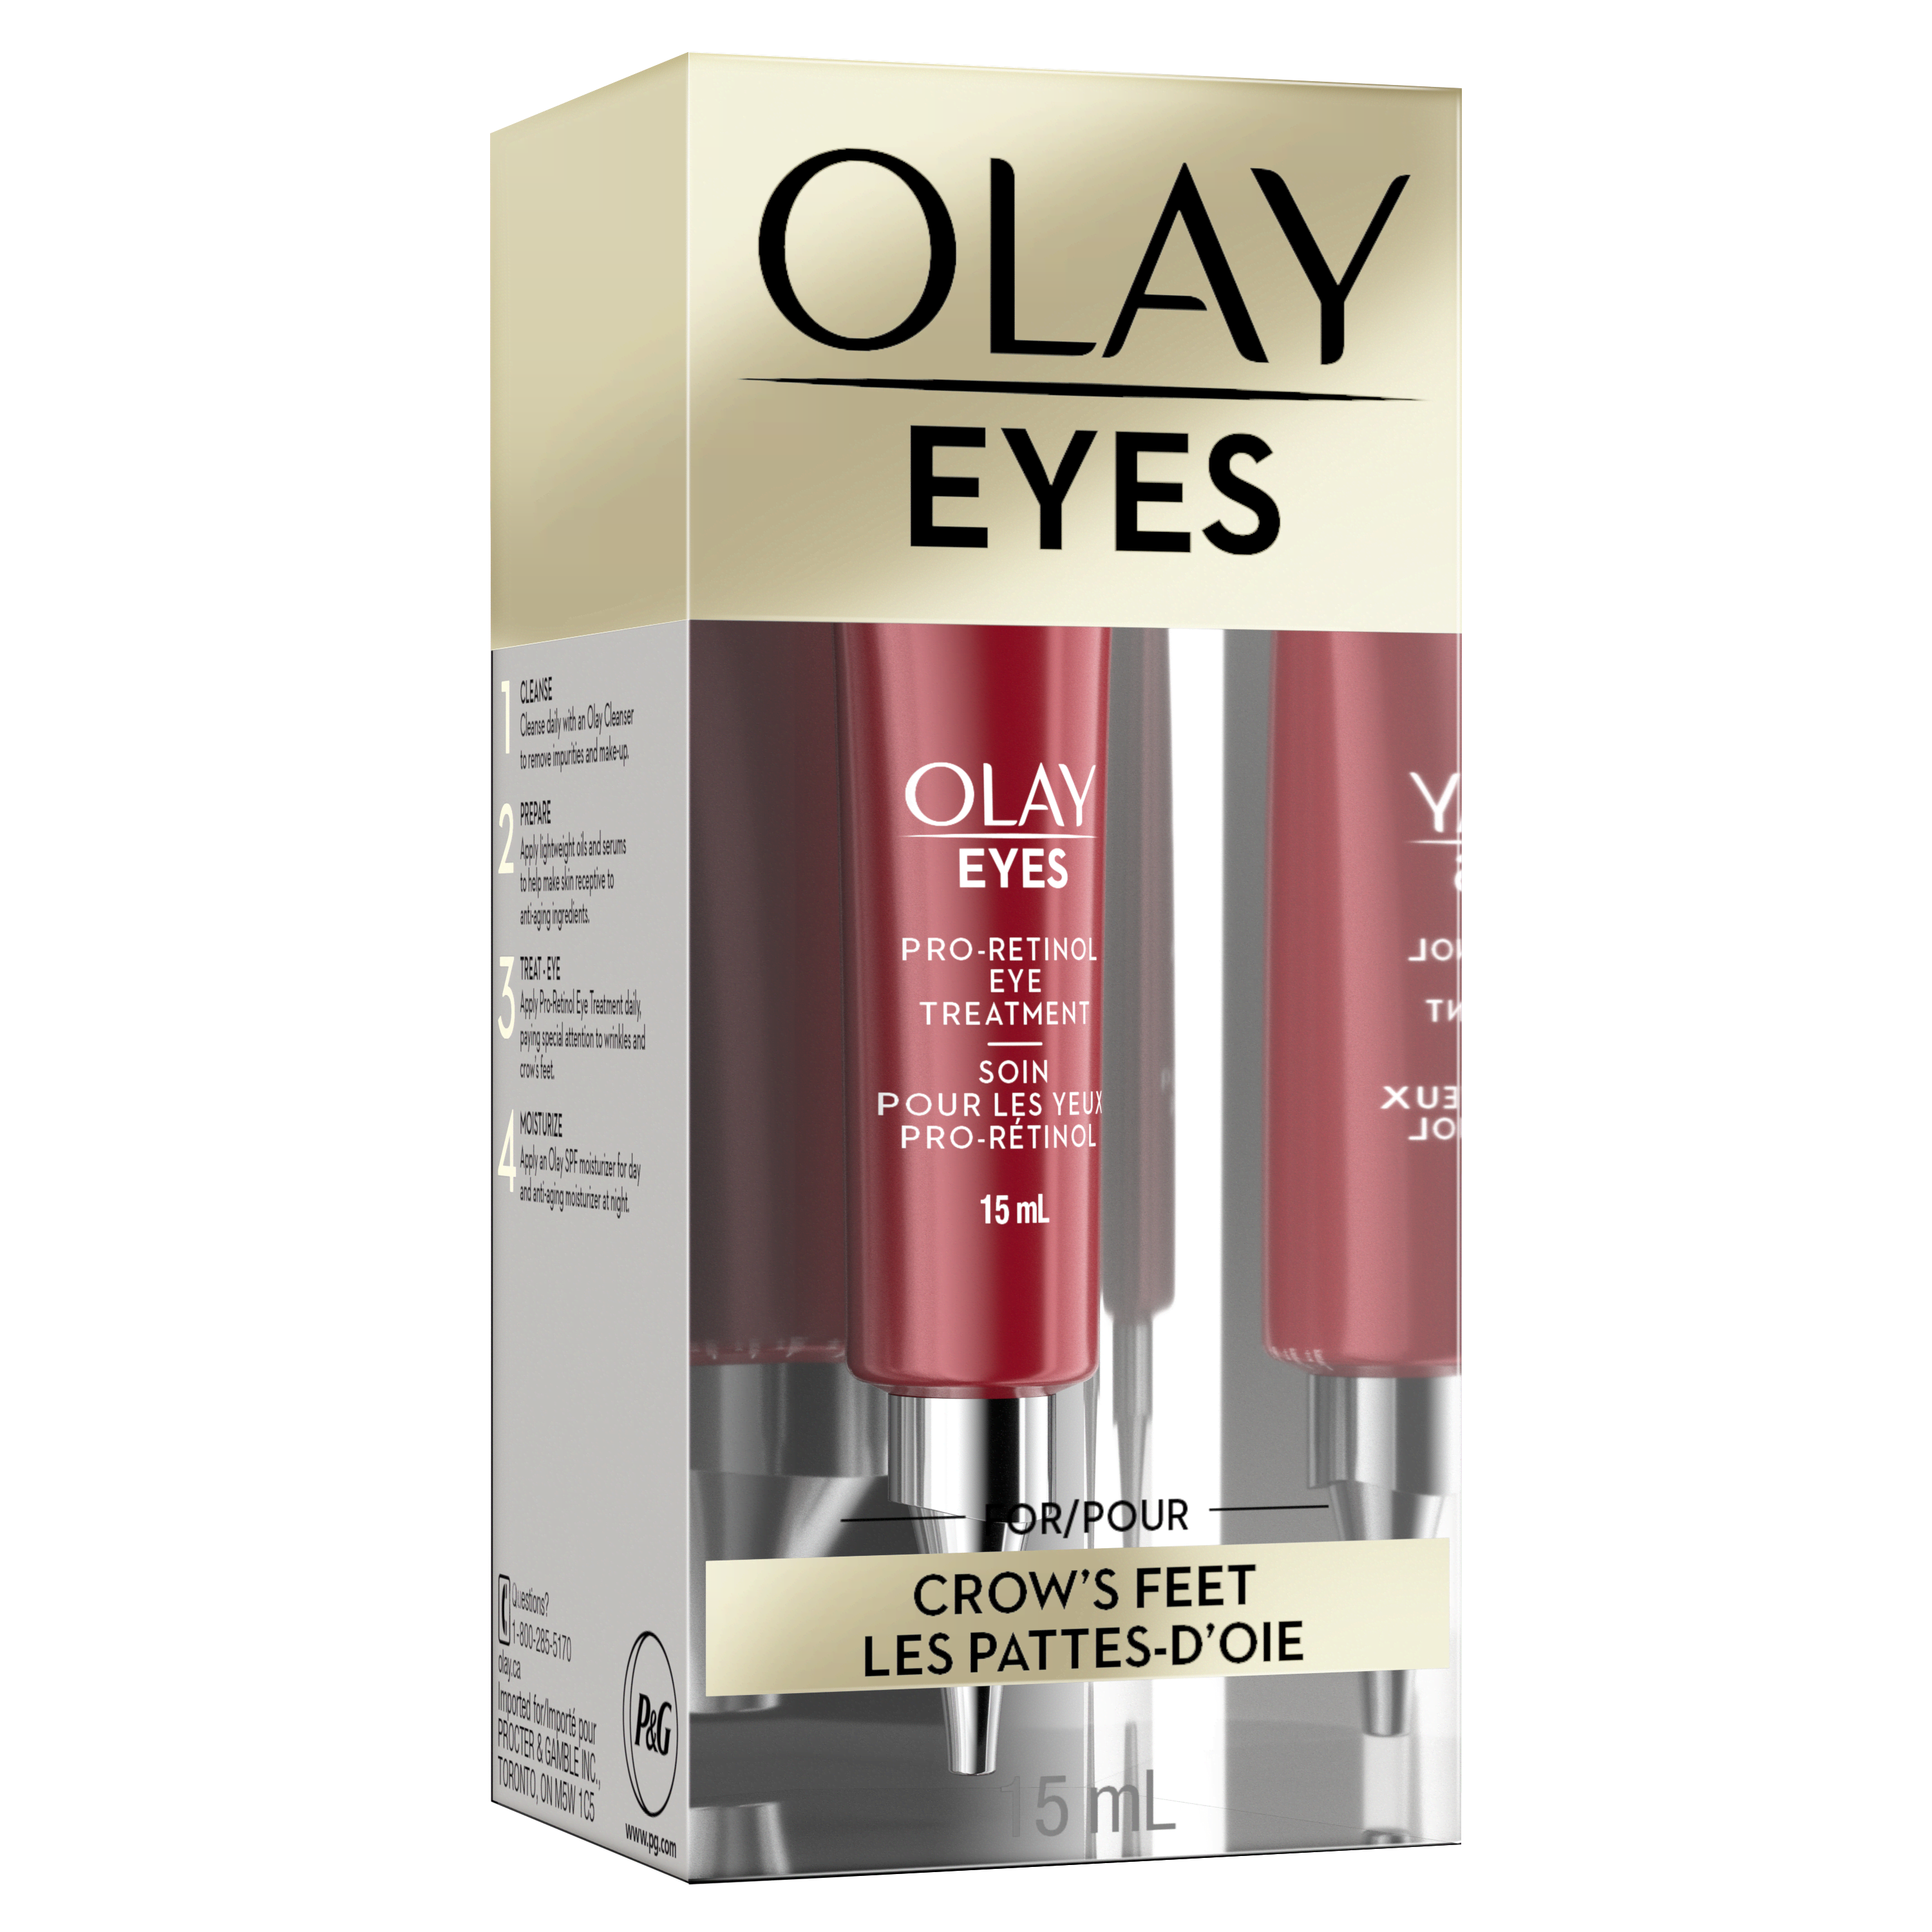 Olay Eyes Pro Retinol Eye Treatment for Wrinkles_2